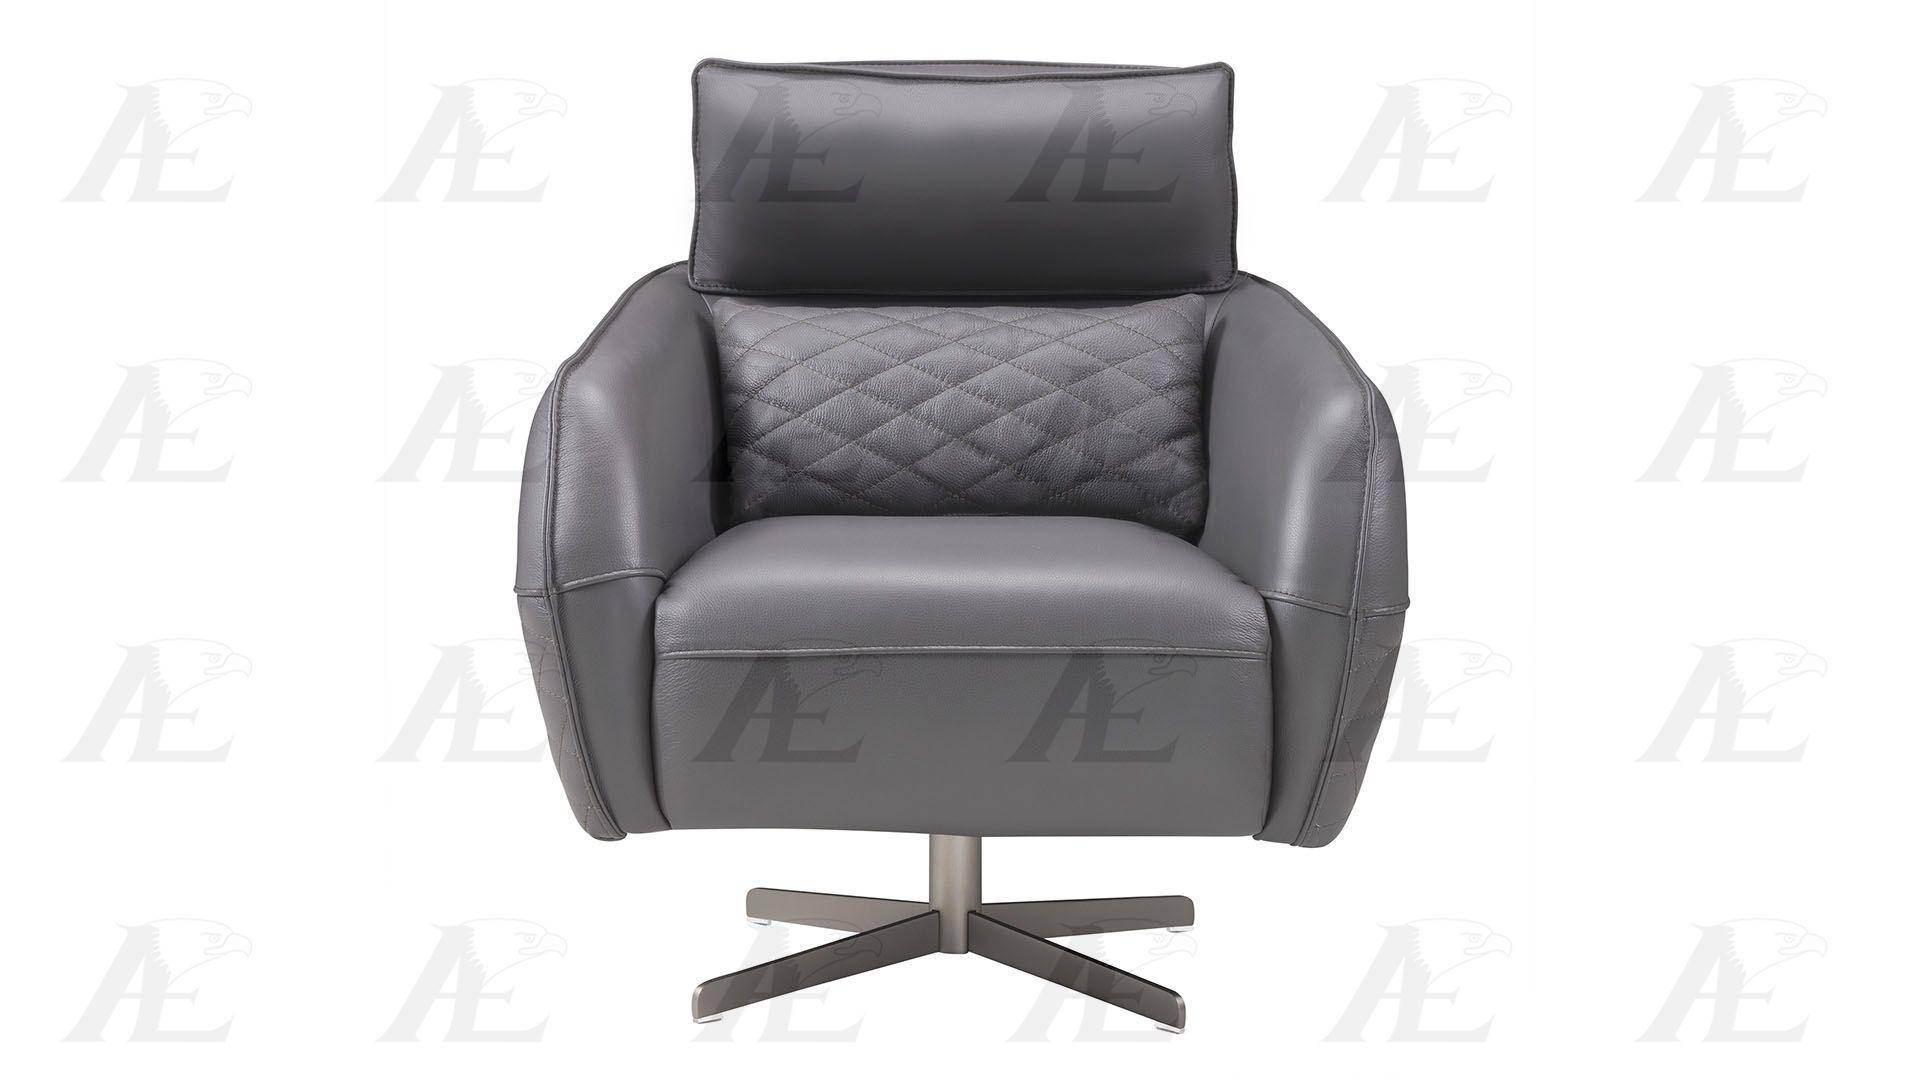 American Eagle Furniture Ek Ch06A Gr Dark Gray Swivel Accent Chair Within Dark Grey Swivel Chairs (Image 2 of 20)